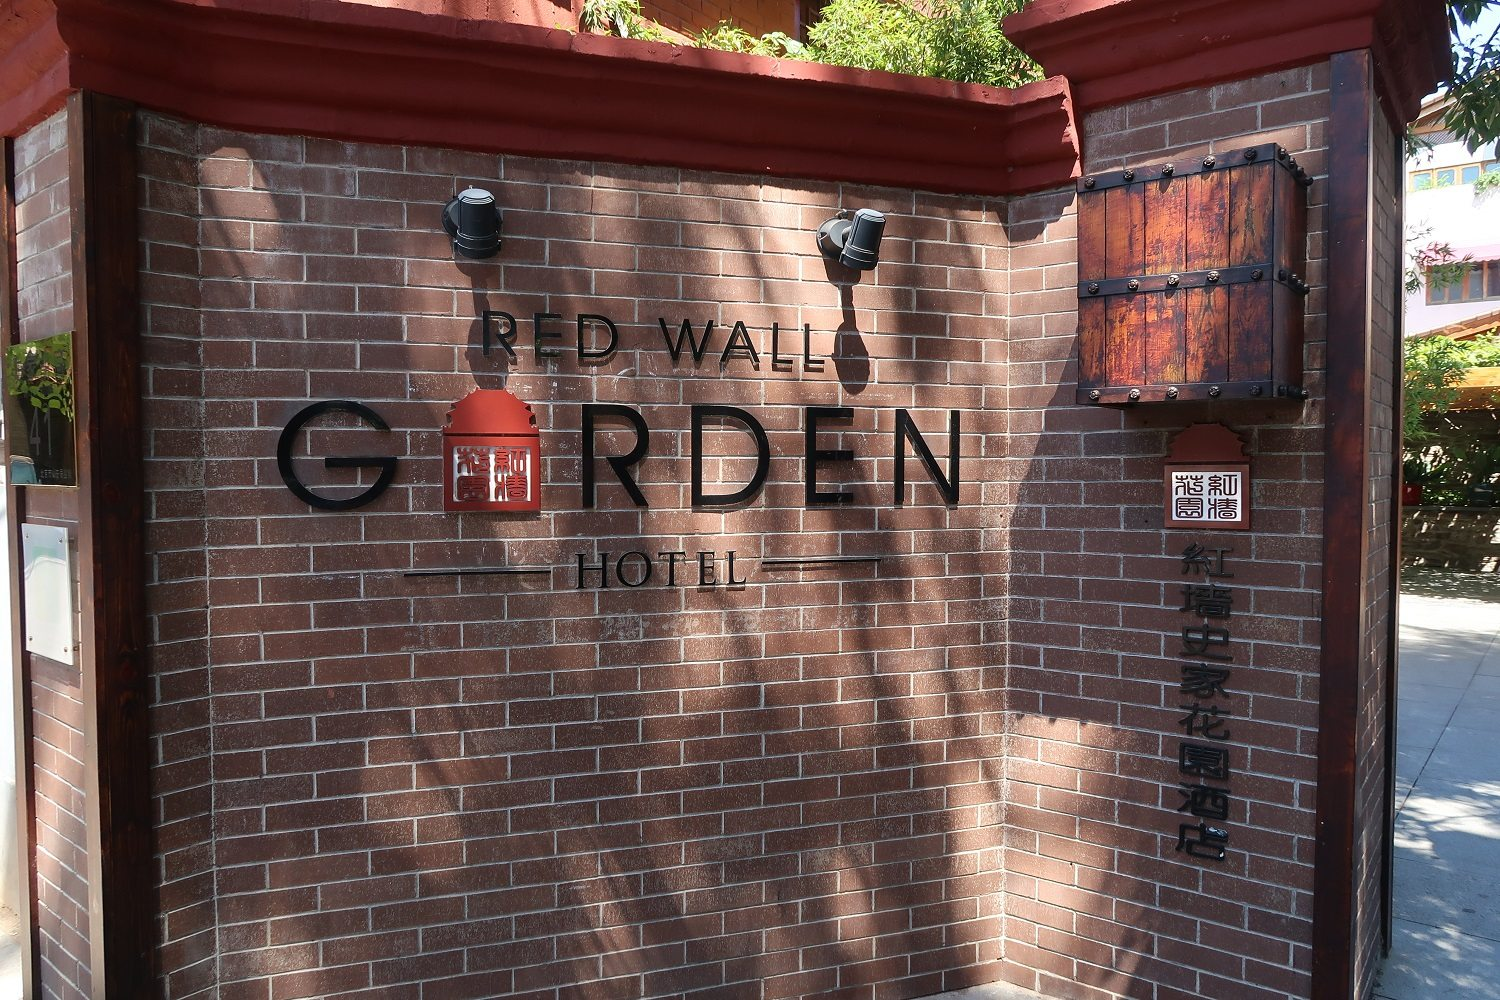 GeekDad Travels: Red Wall Garden Hotel Is an Oasis in Beijing's Insanity